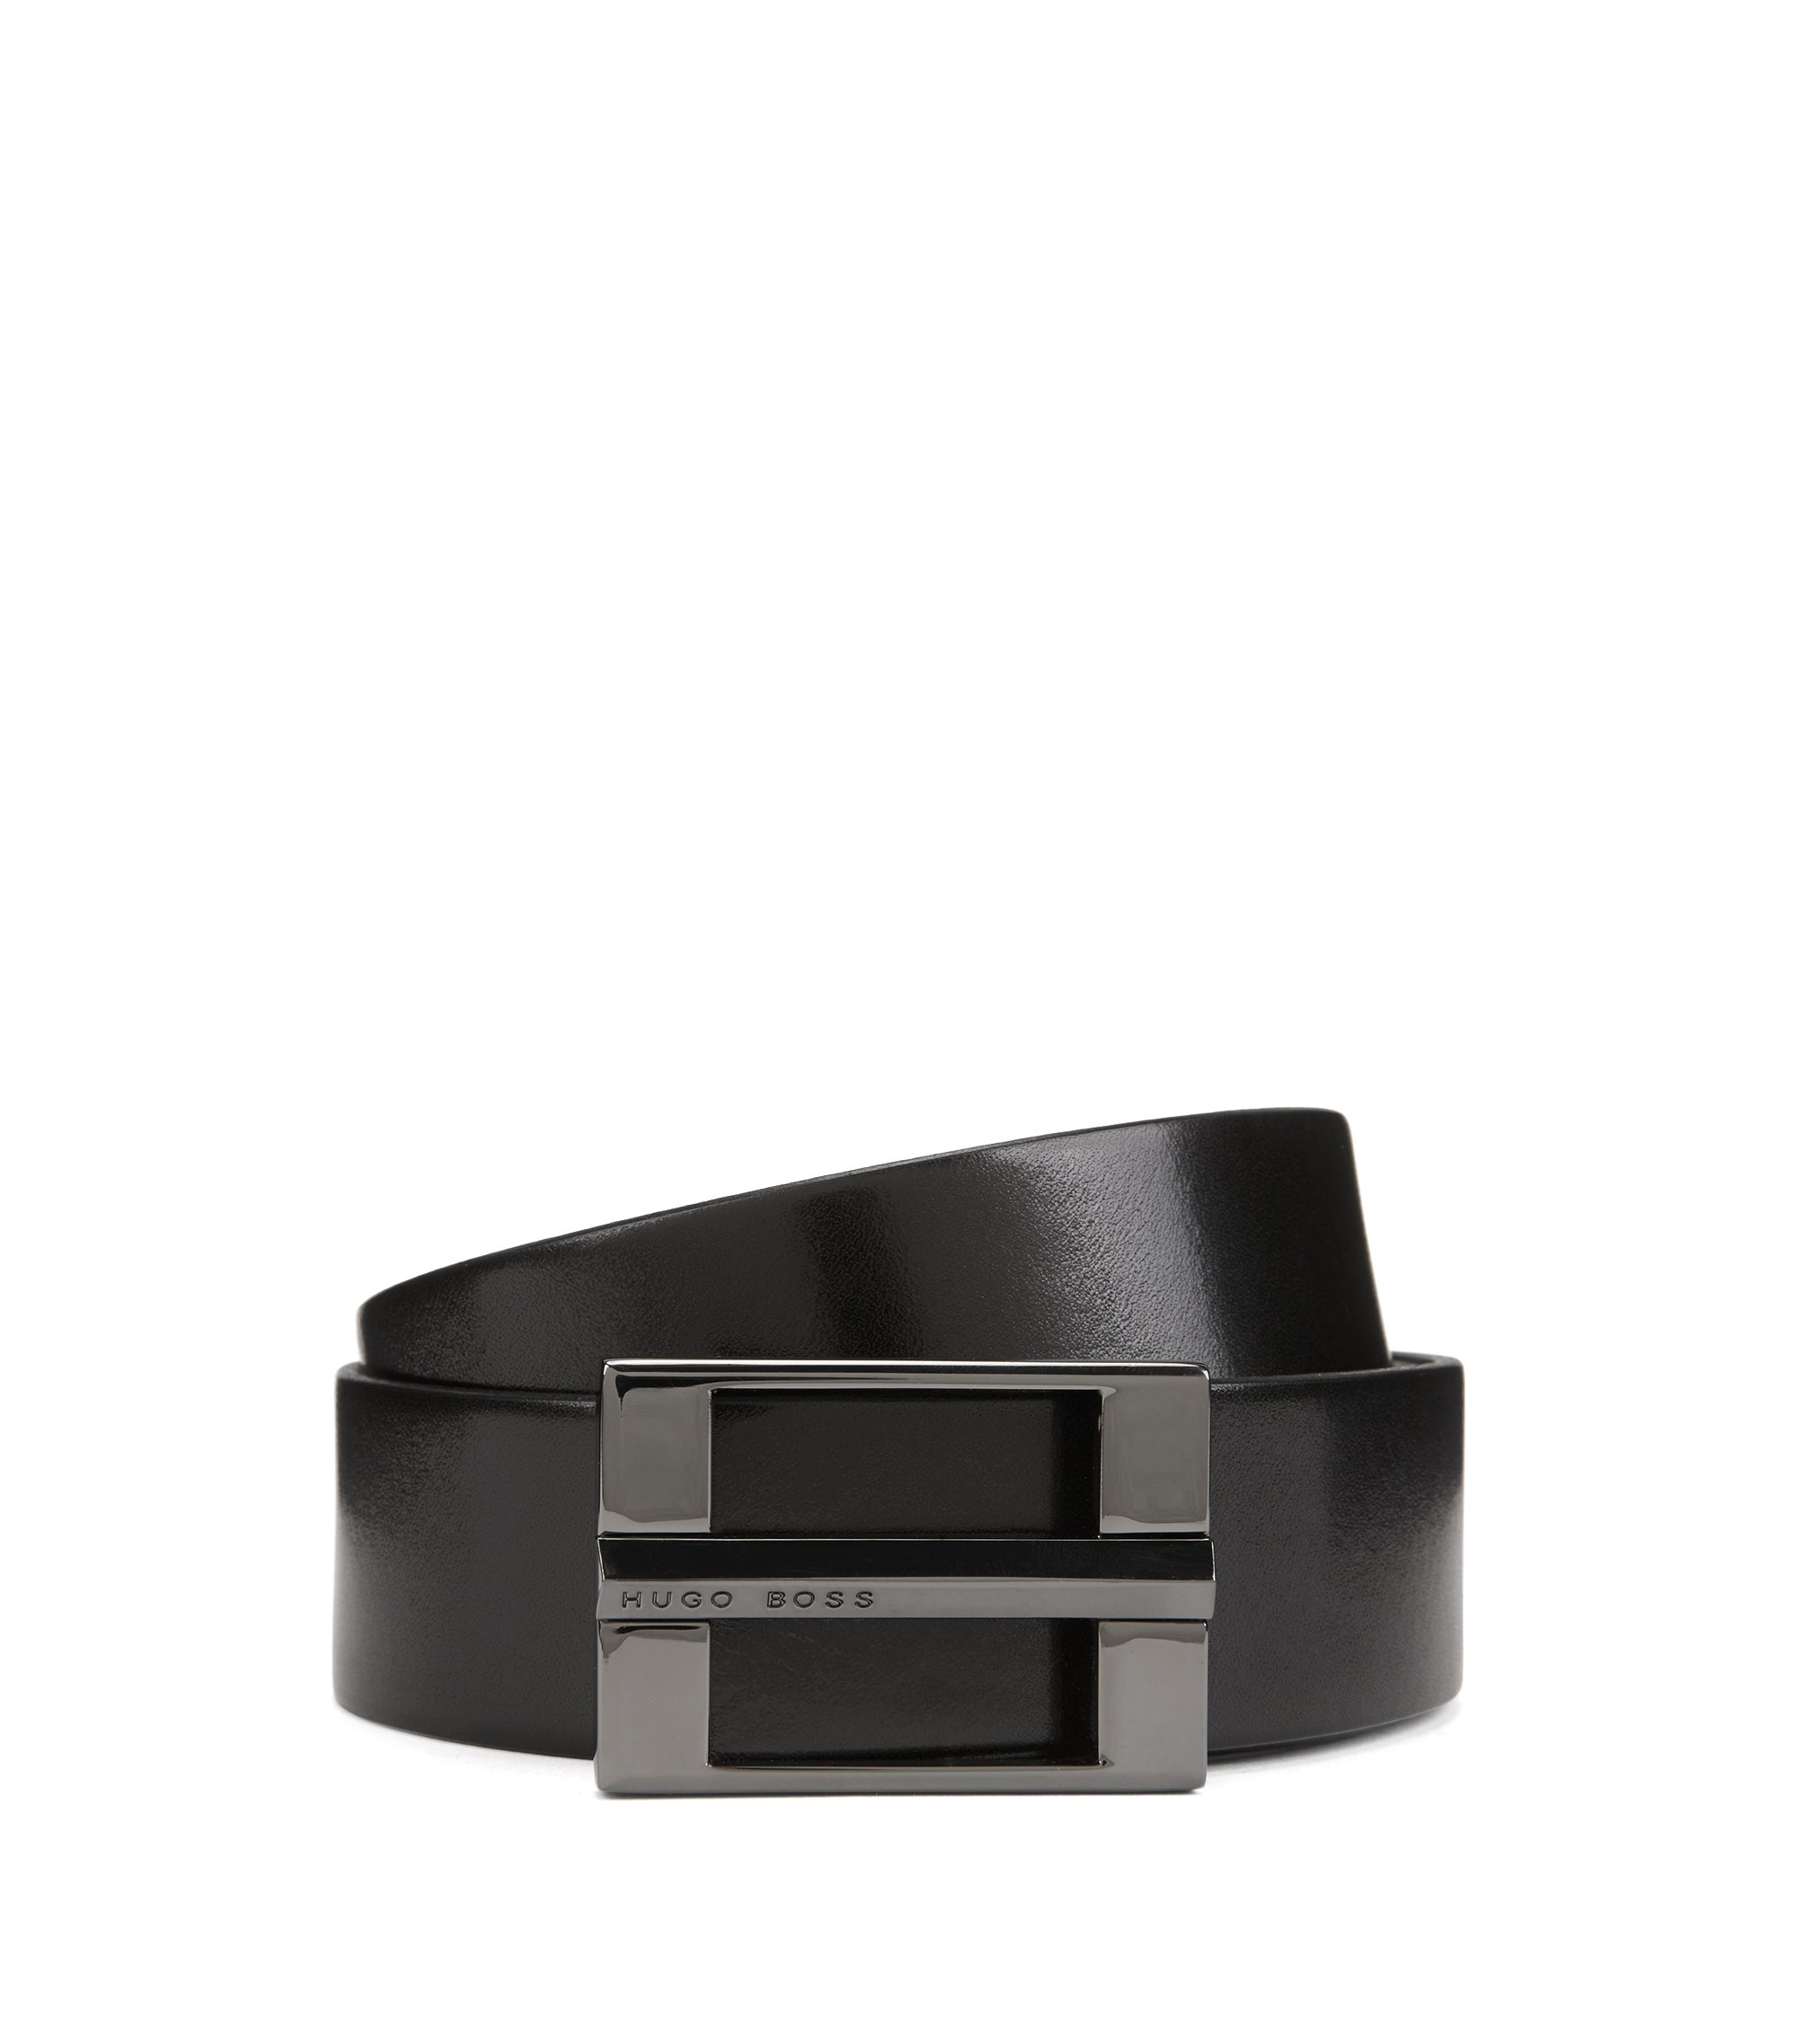 Leather belt with signature gunmetal hardware, Black